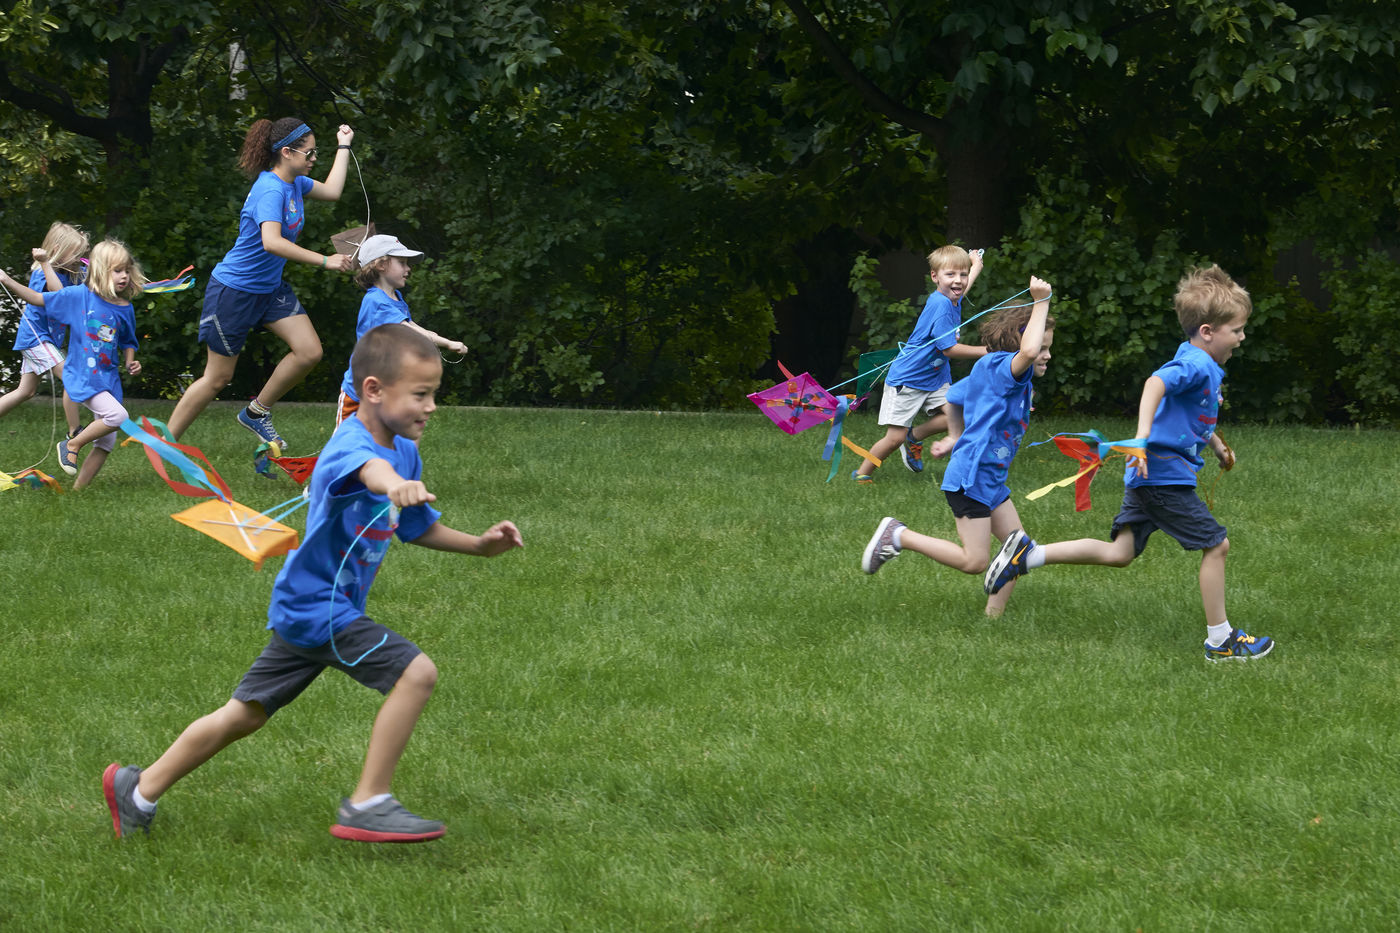 Children, accompanied by a counselor, race through the grass on the Museum Campus pulling kites along.